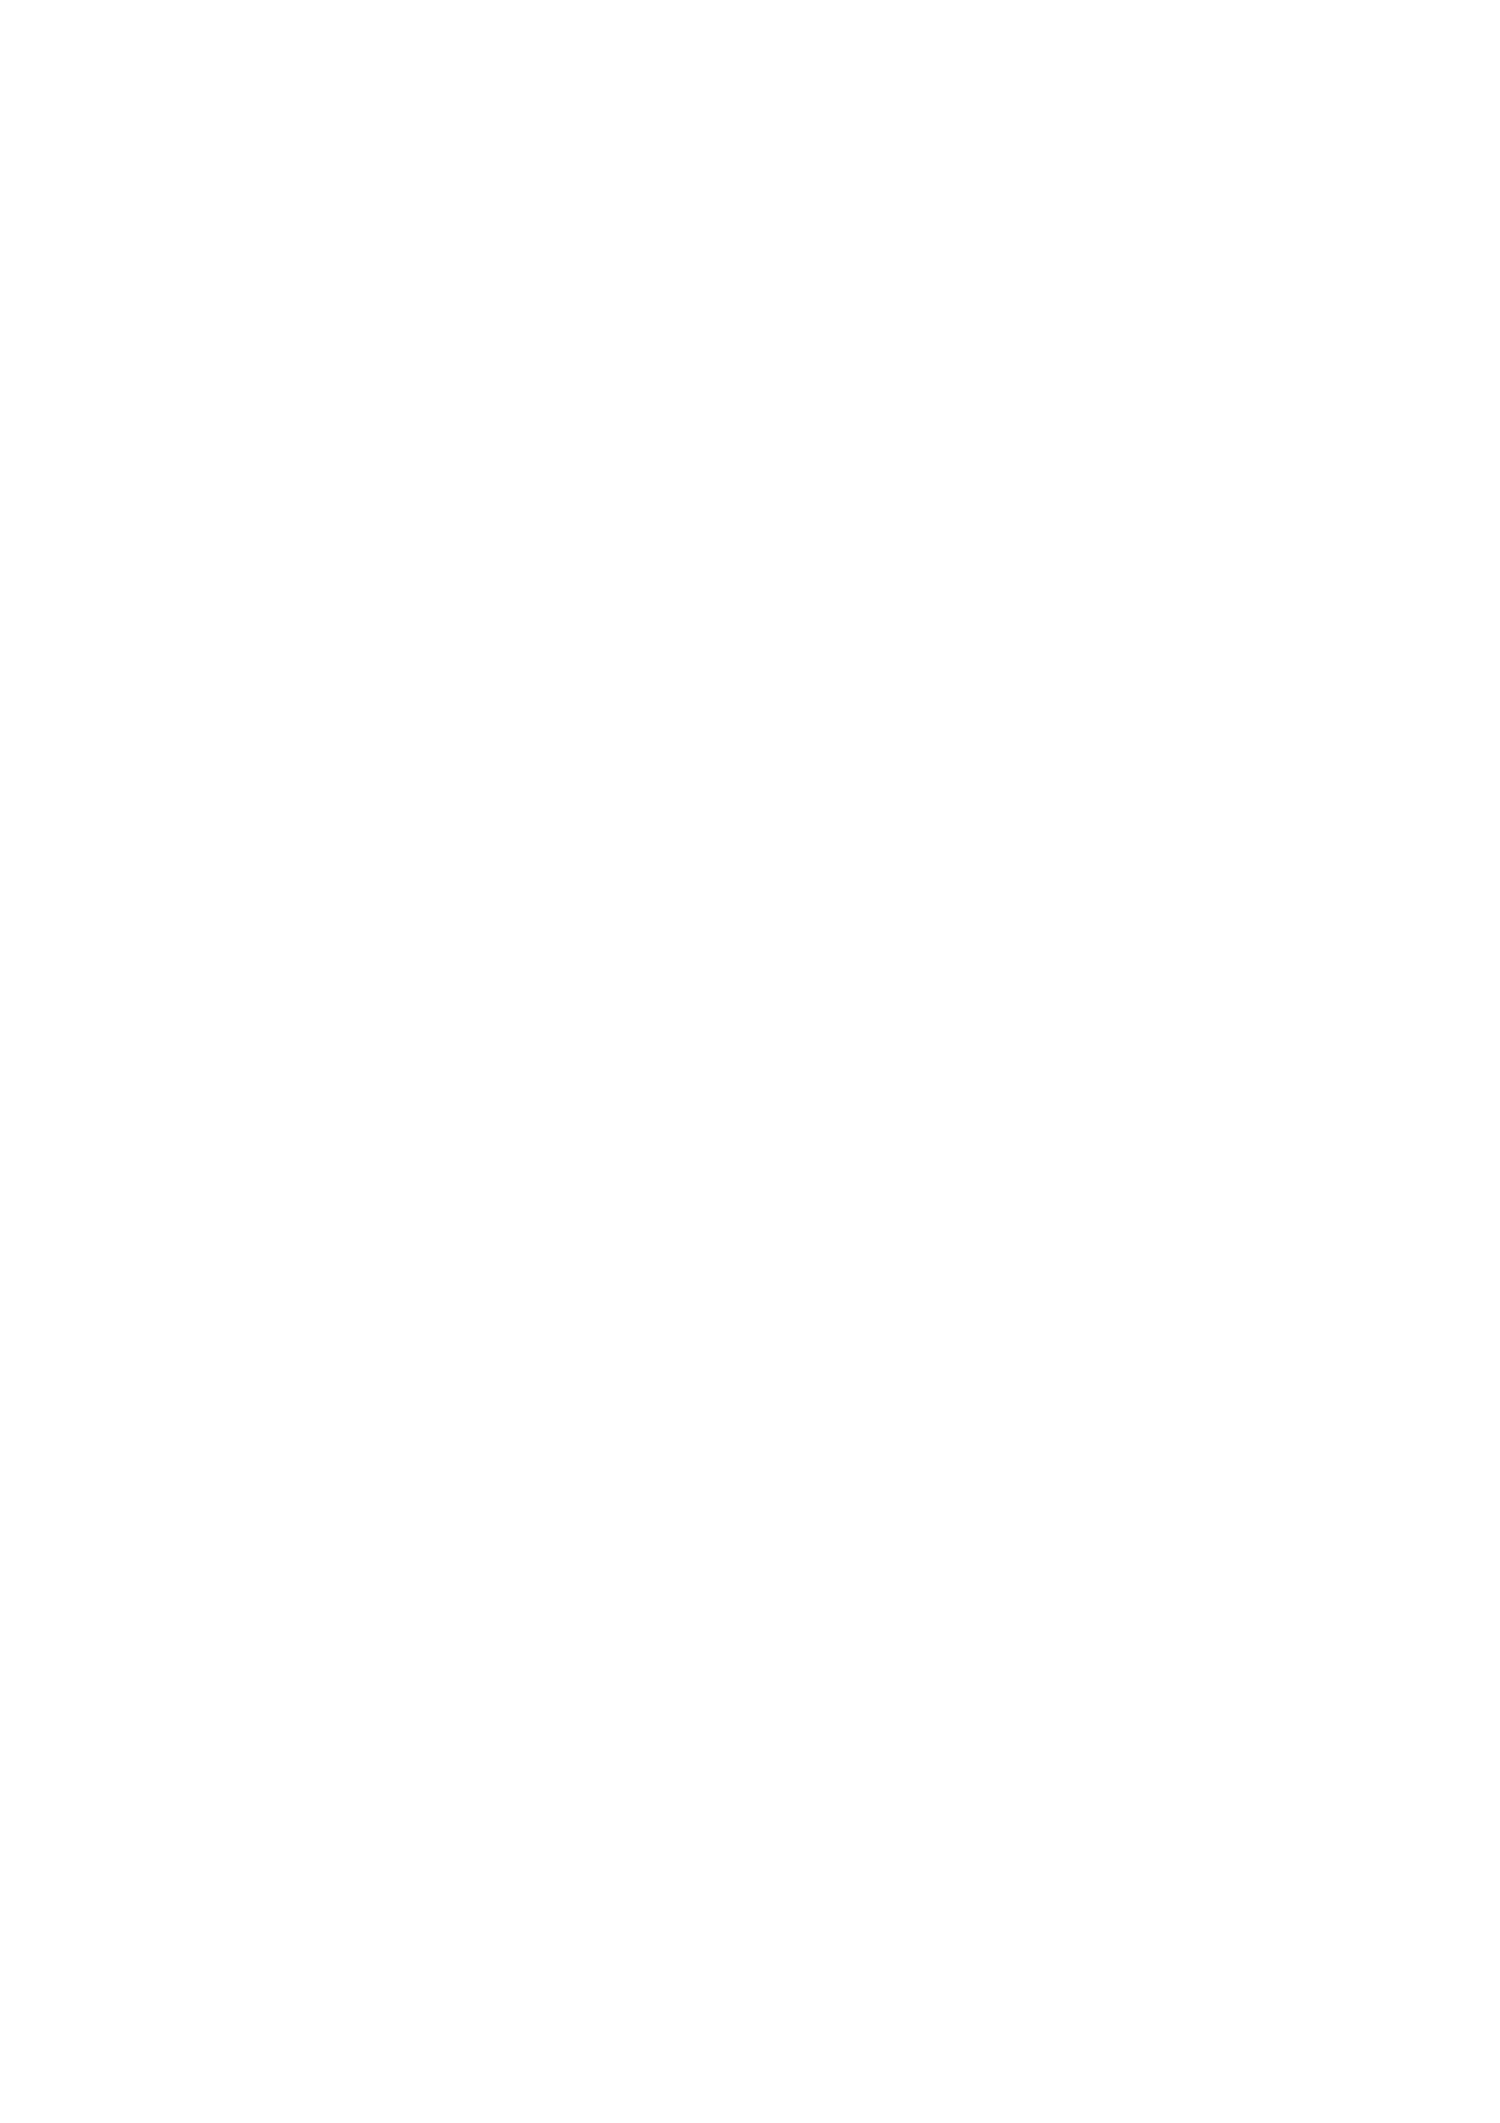 McNulty Coaching Services, LLC